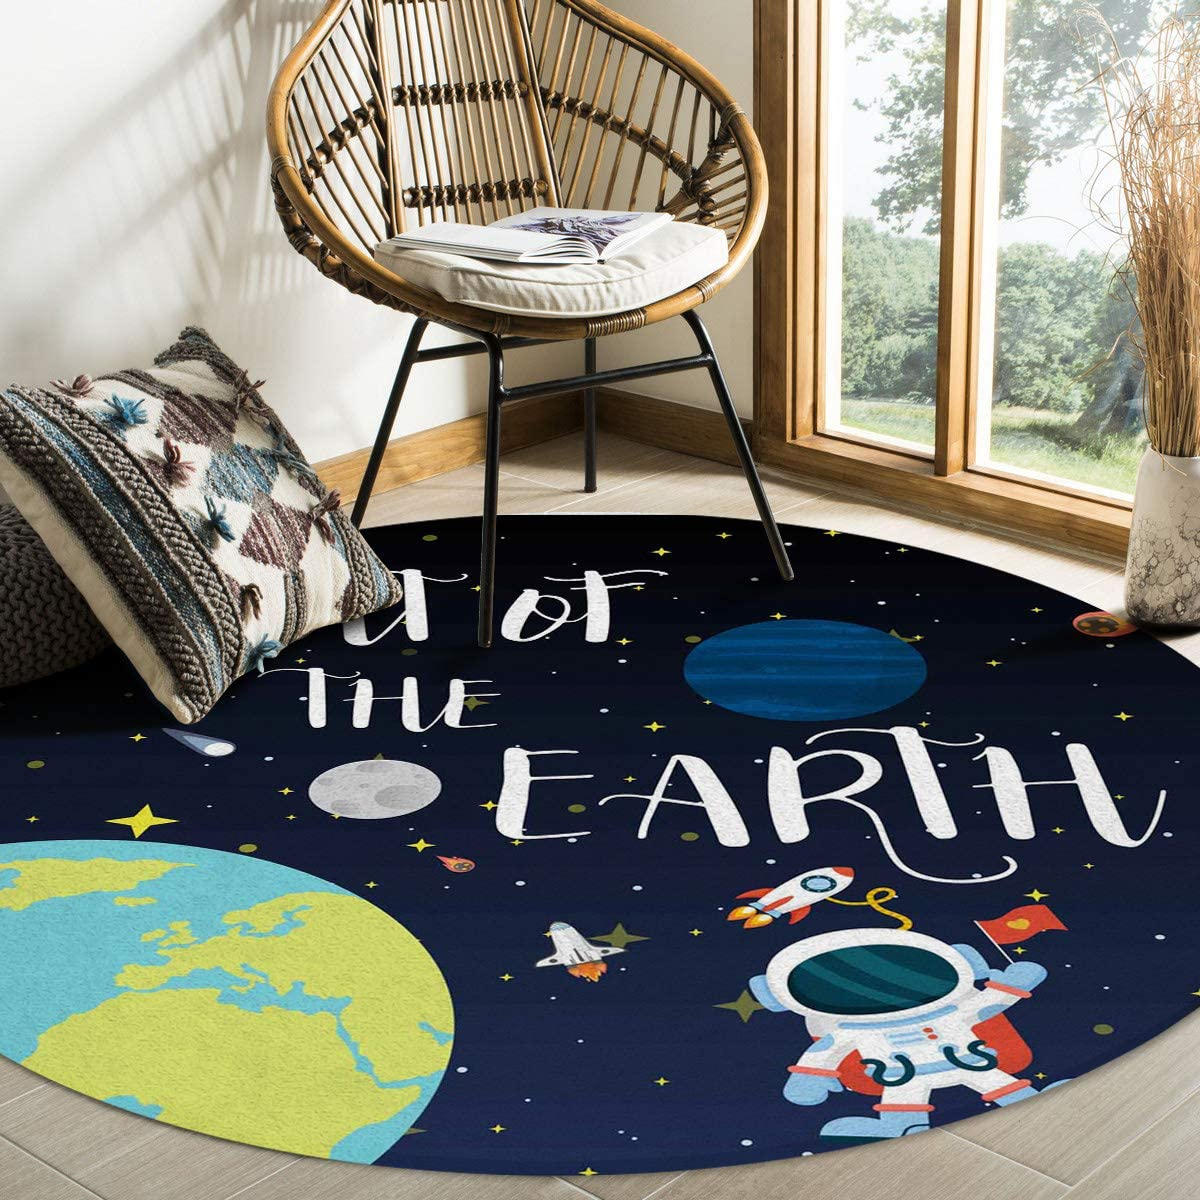 FAMILYDECOR Indoor Round Area Rug - Feet Non-Slip New products world's highest quality popular Floor Mats Sale Special Price C 4